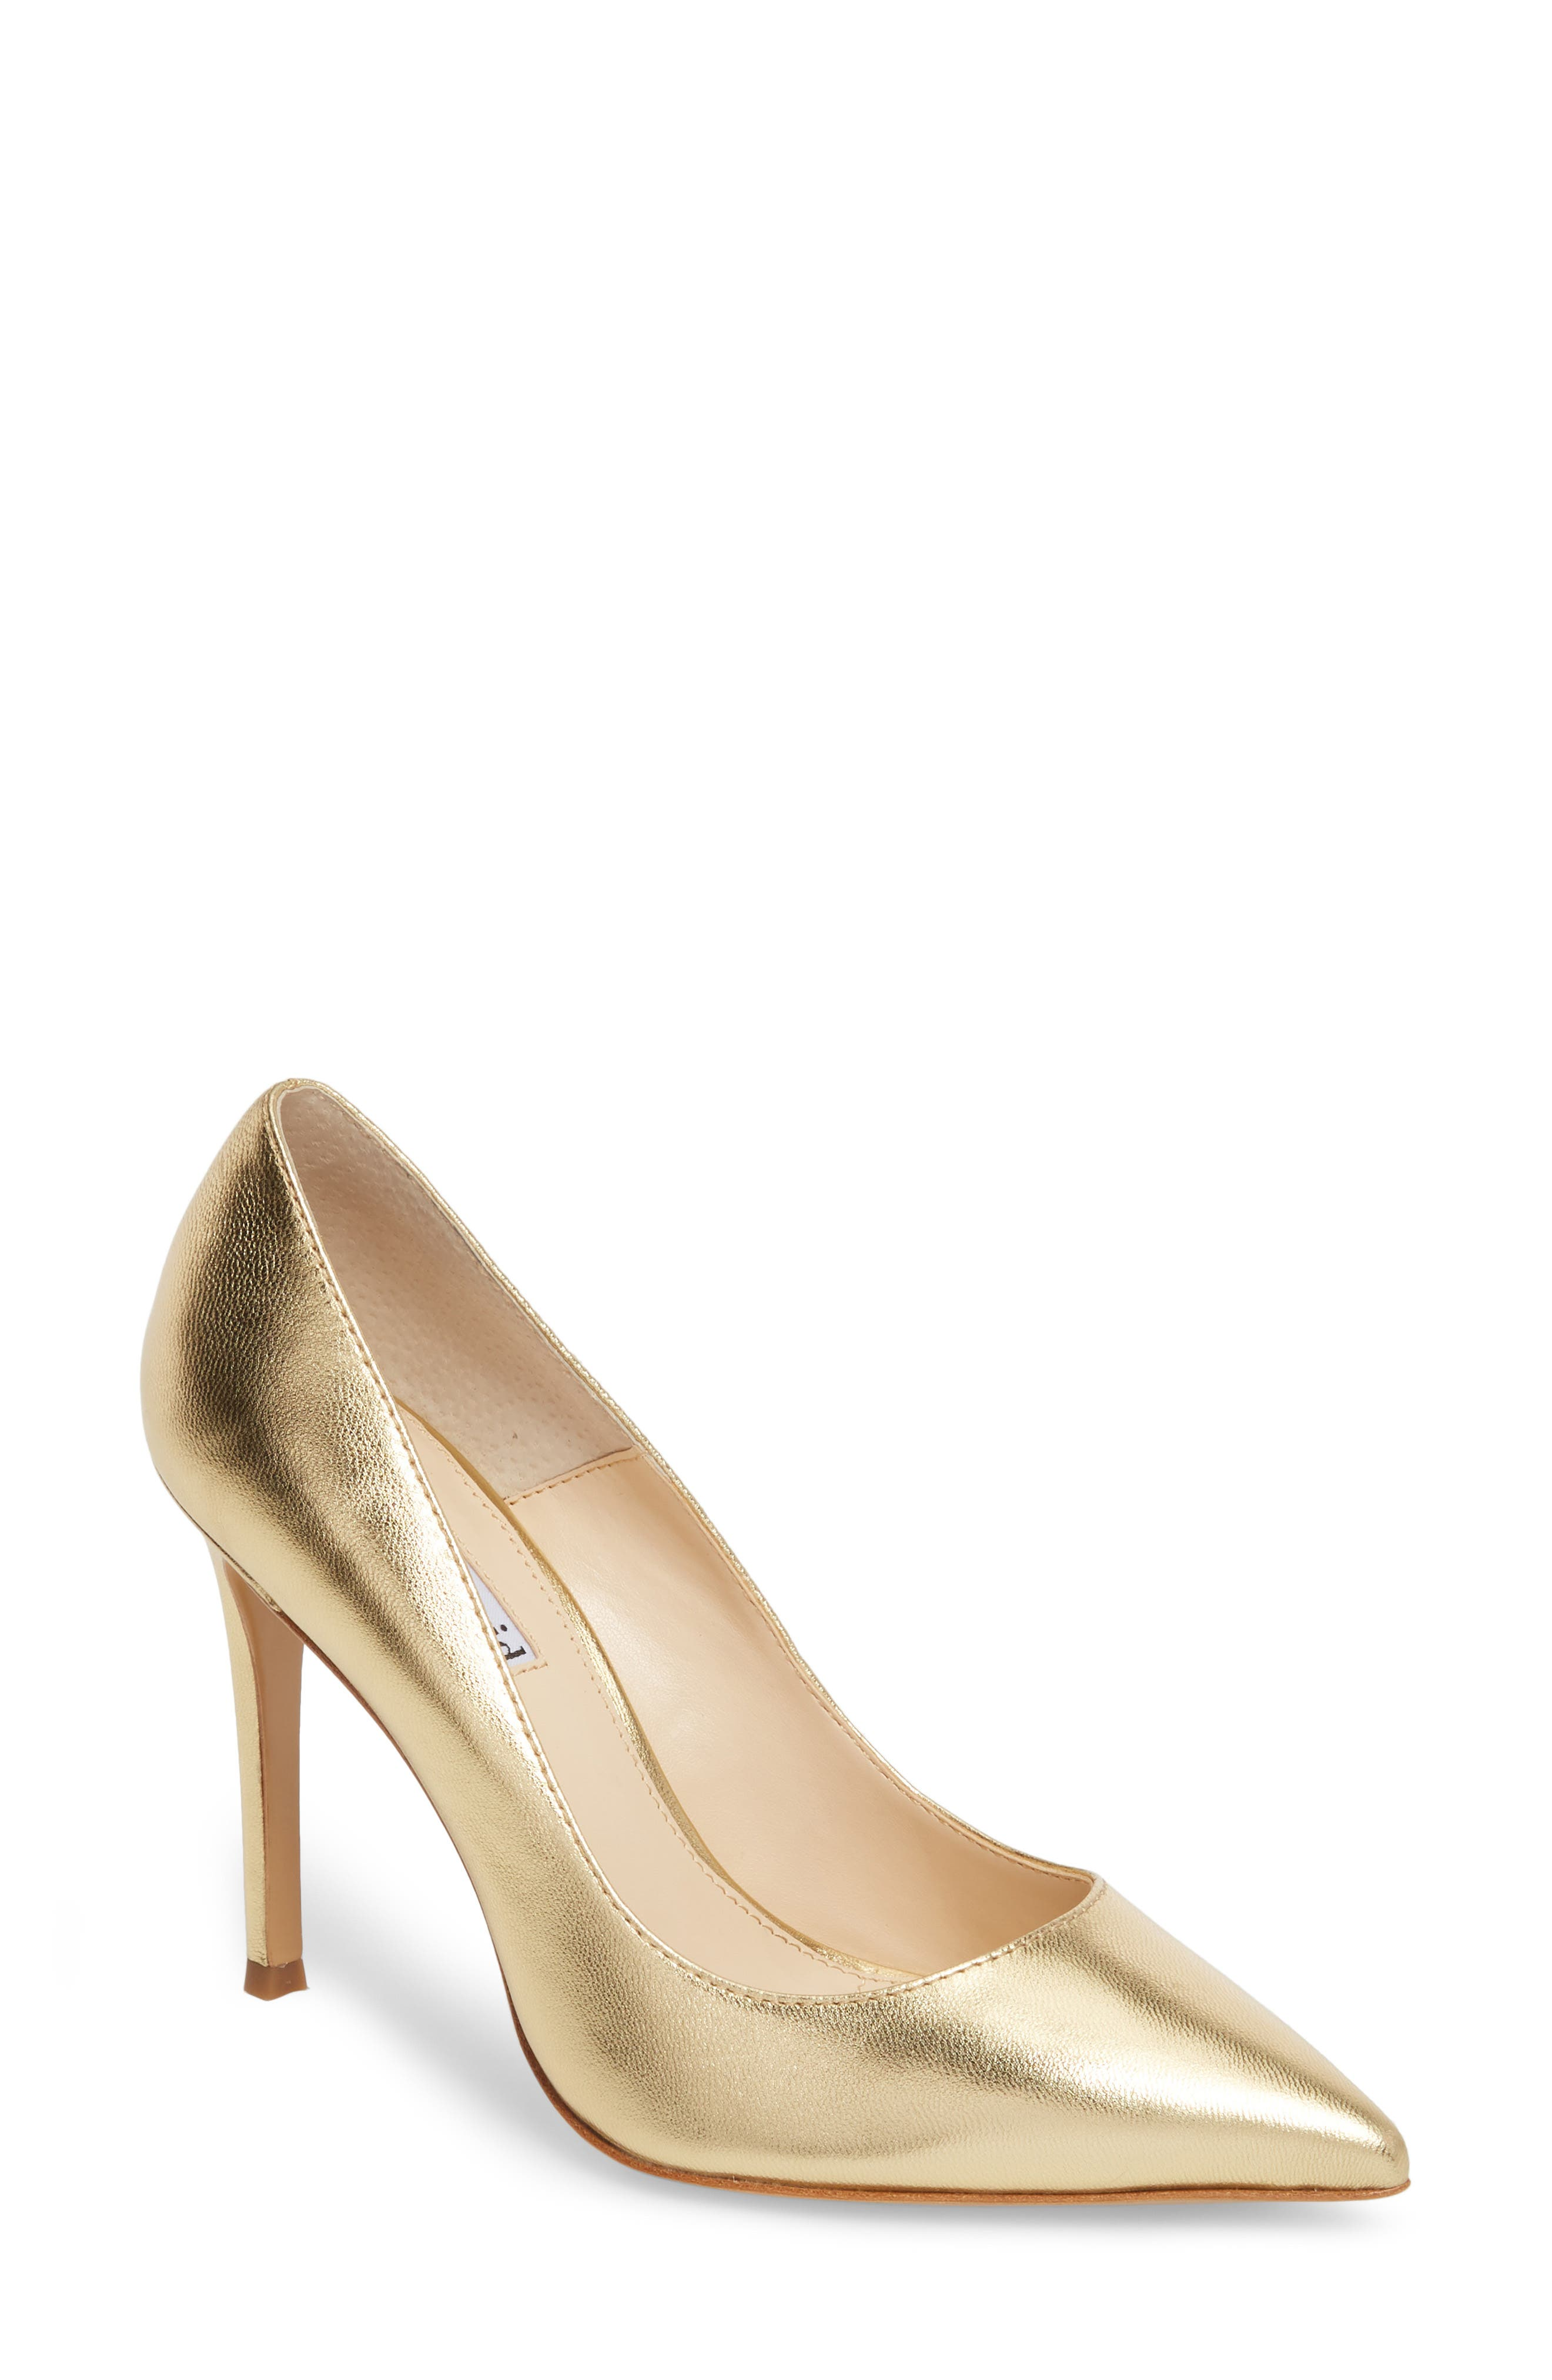 Calessi Pointy Toe Pump,                             Main thumbnail 1, color,                             GOLD LEATHER